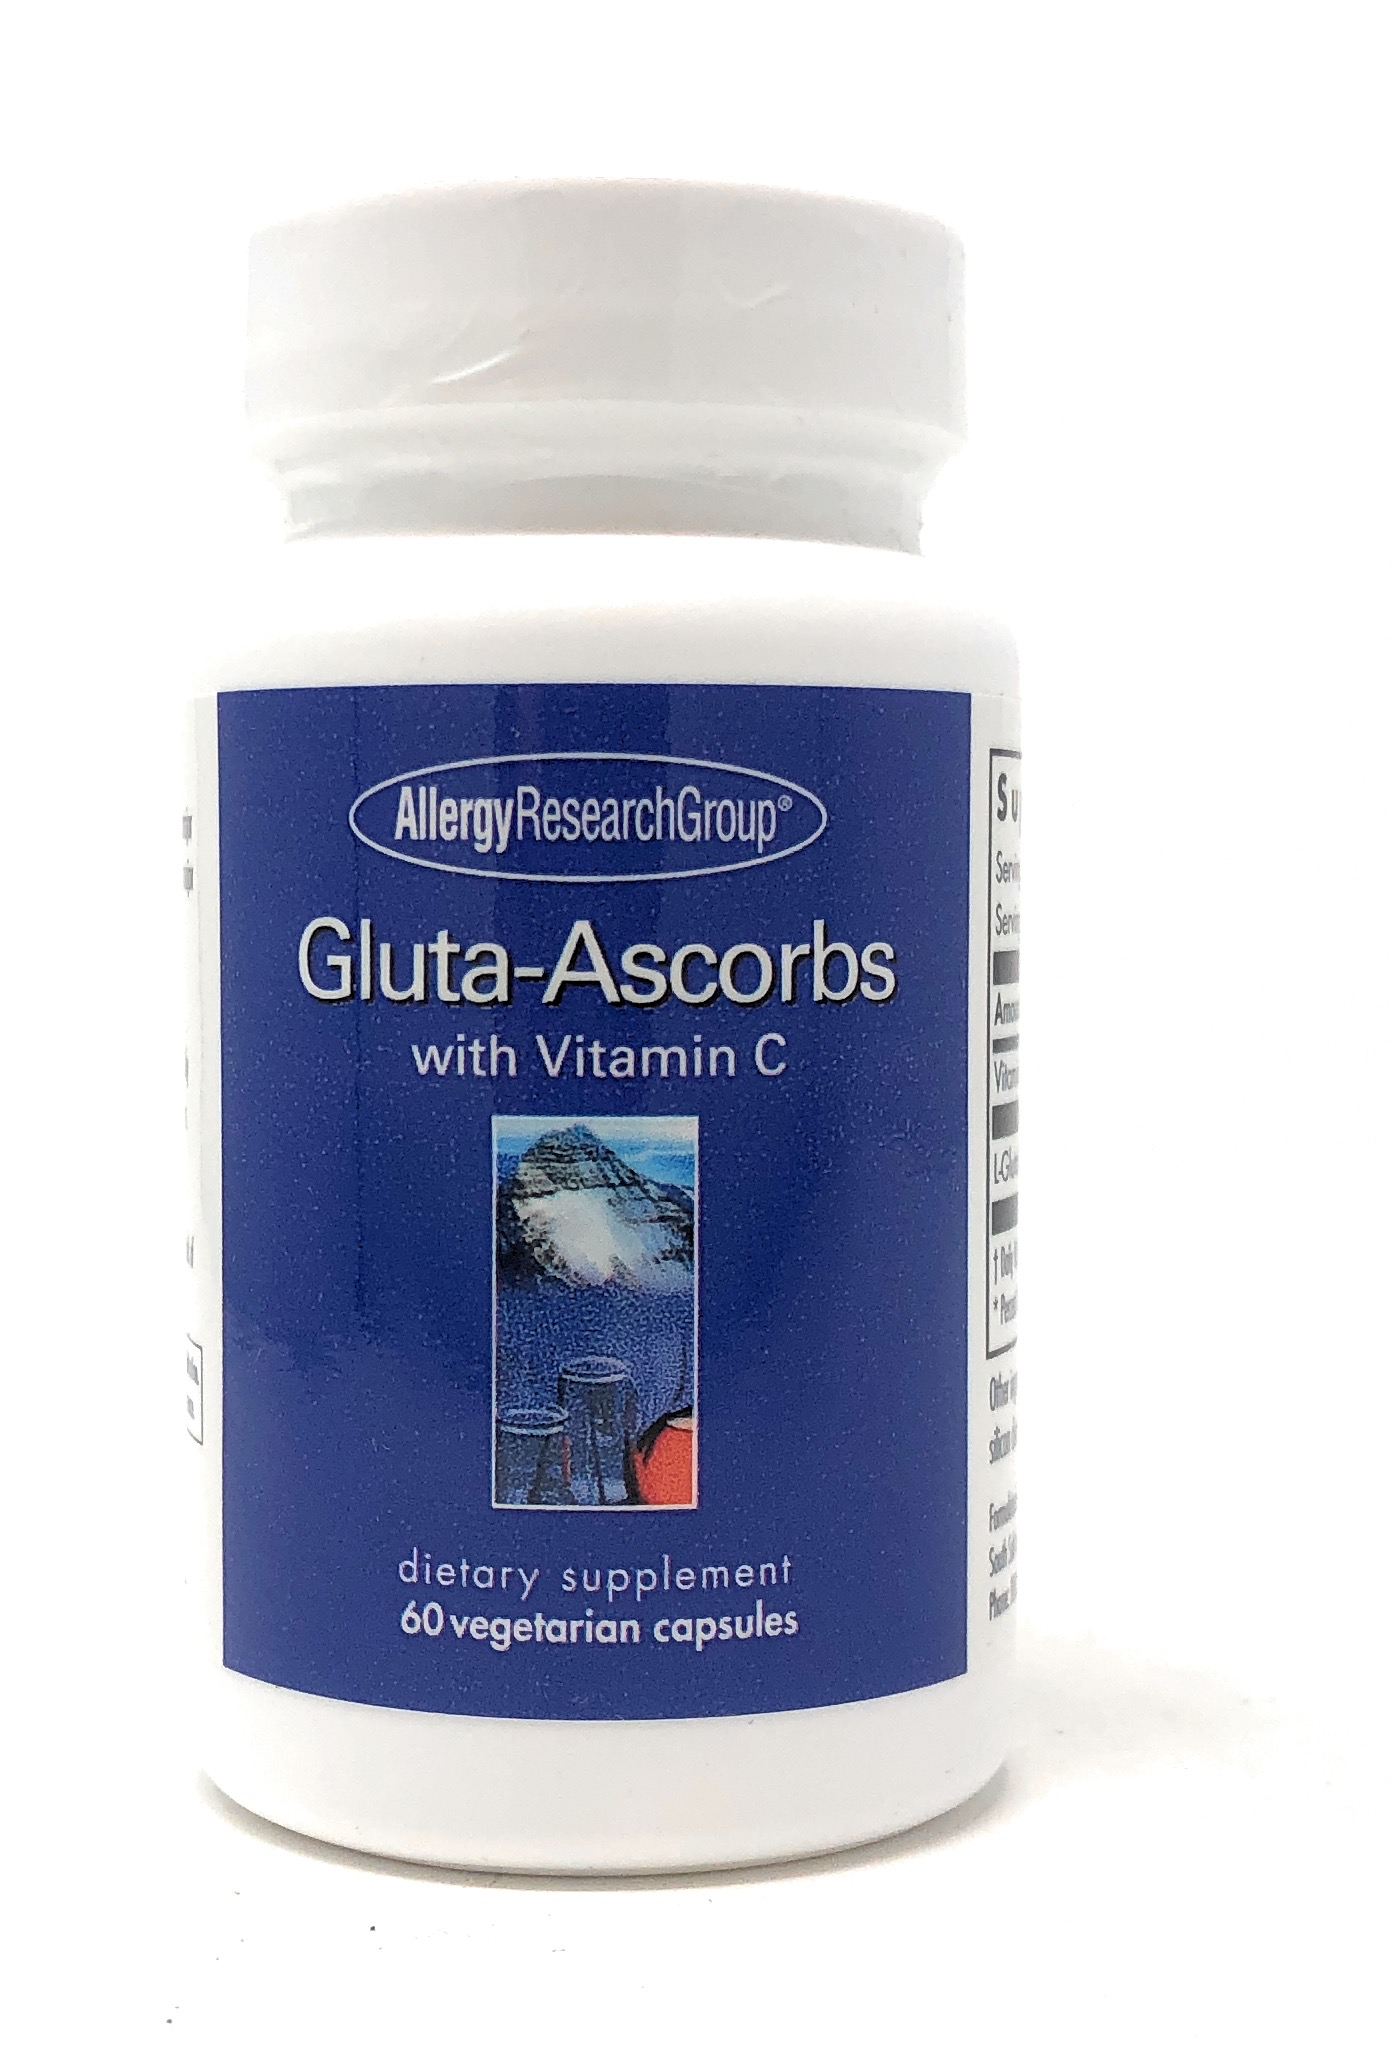 Allergy Research Group Gluta-Ascorbs 60 veg. Kapseln